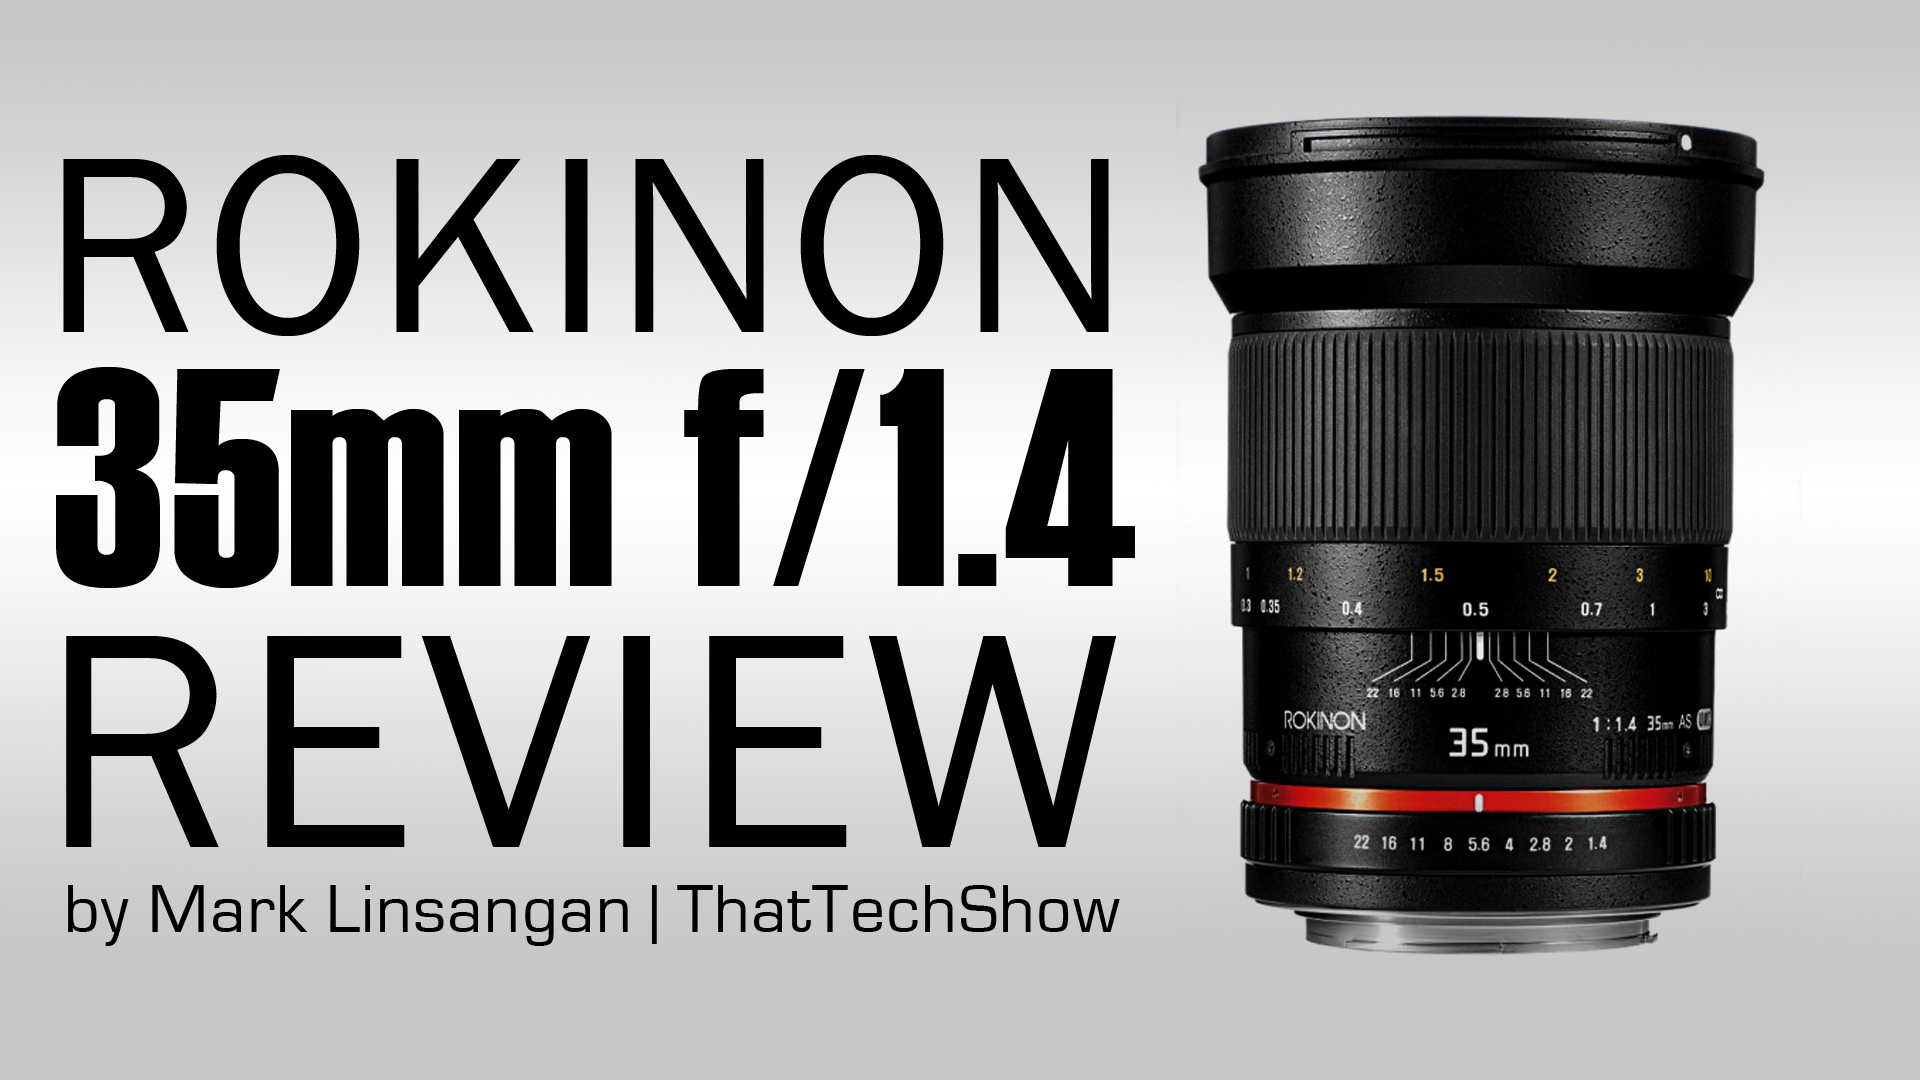 Rokinon 35mm f/1.4 Lens Review